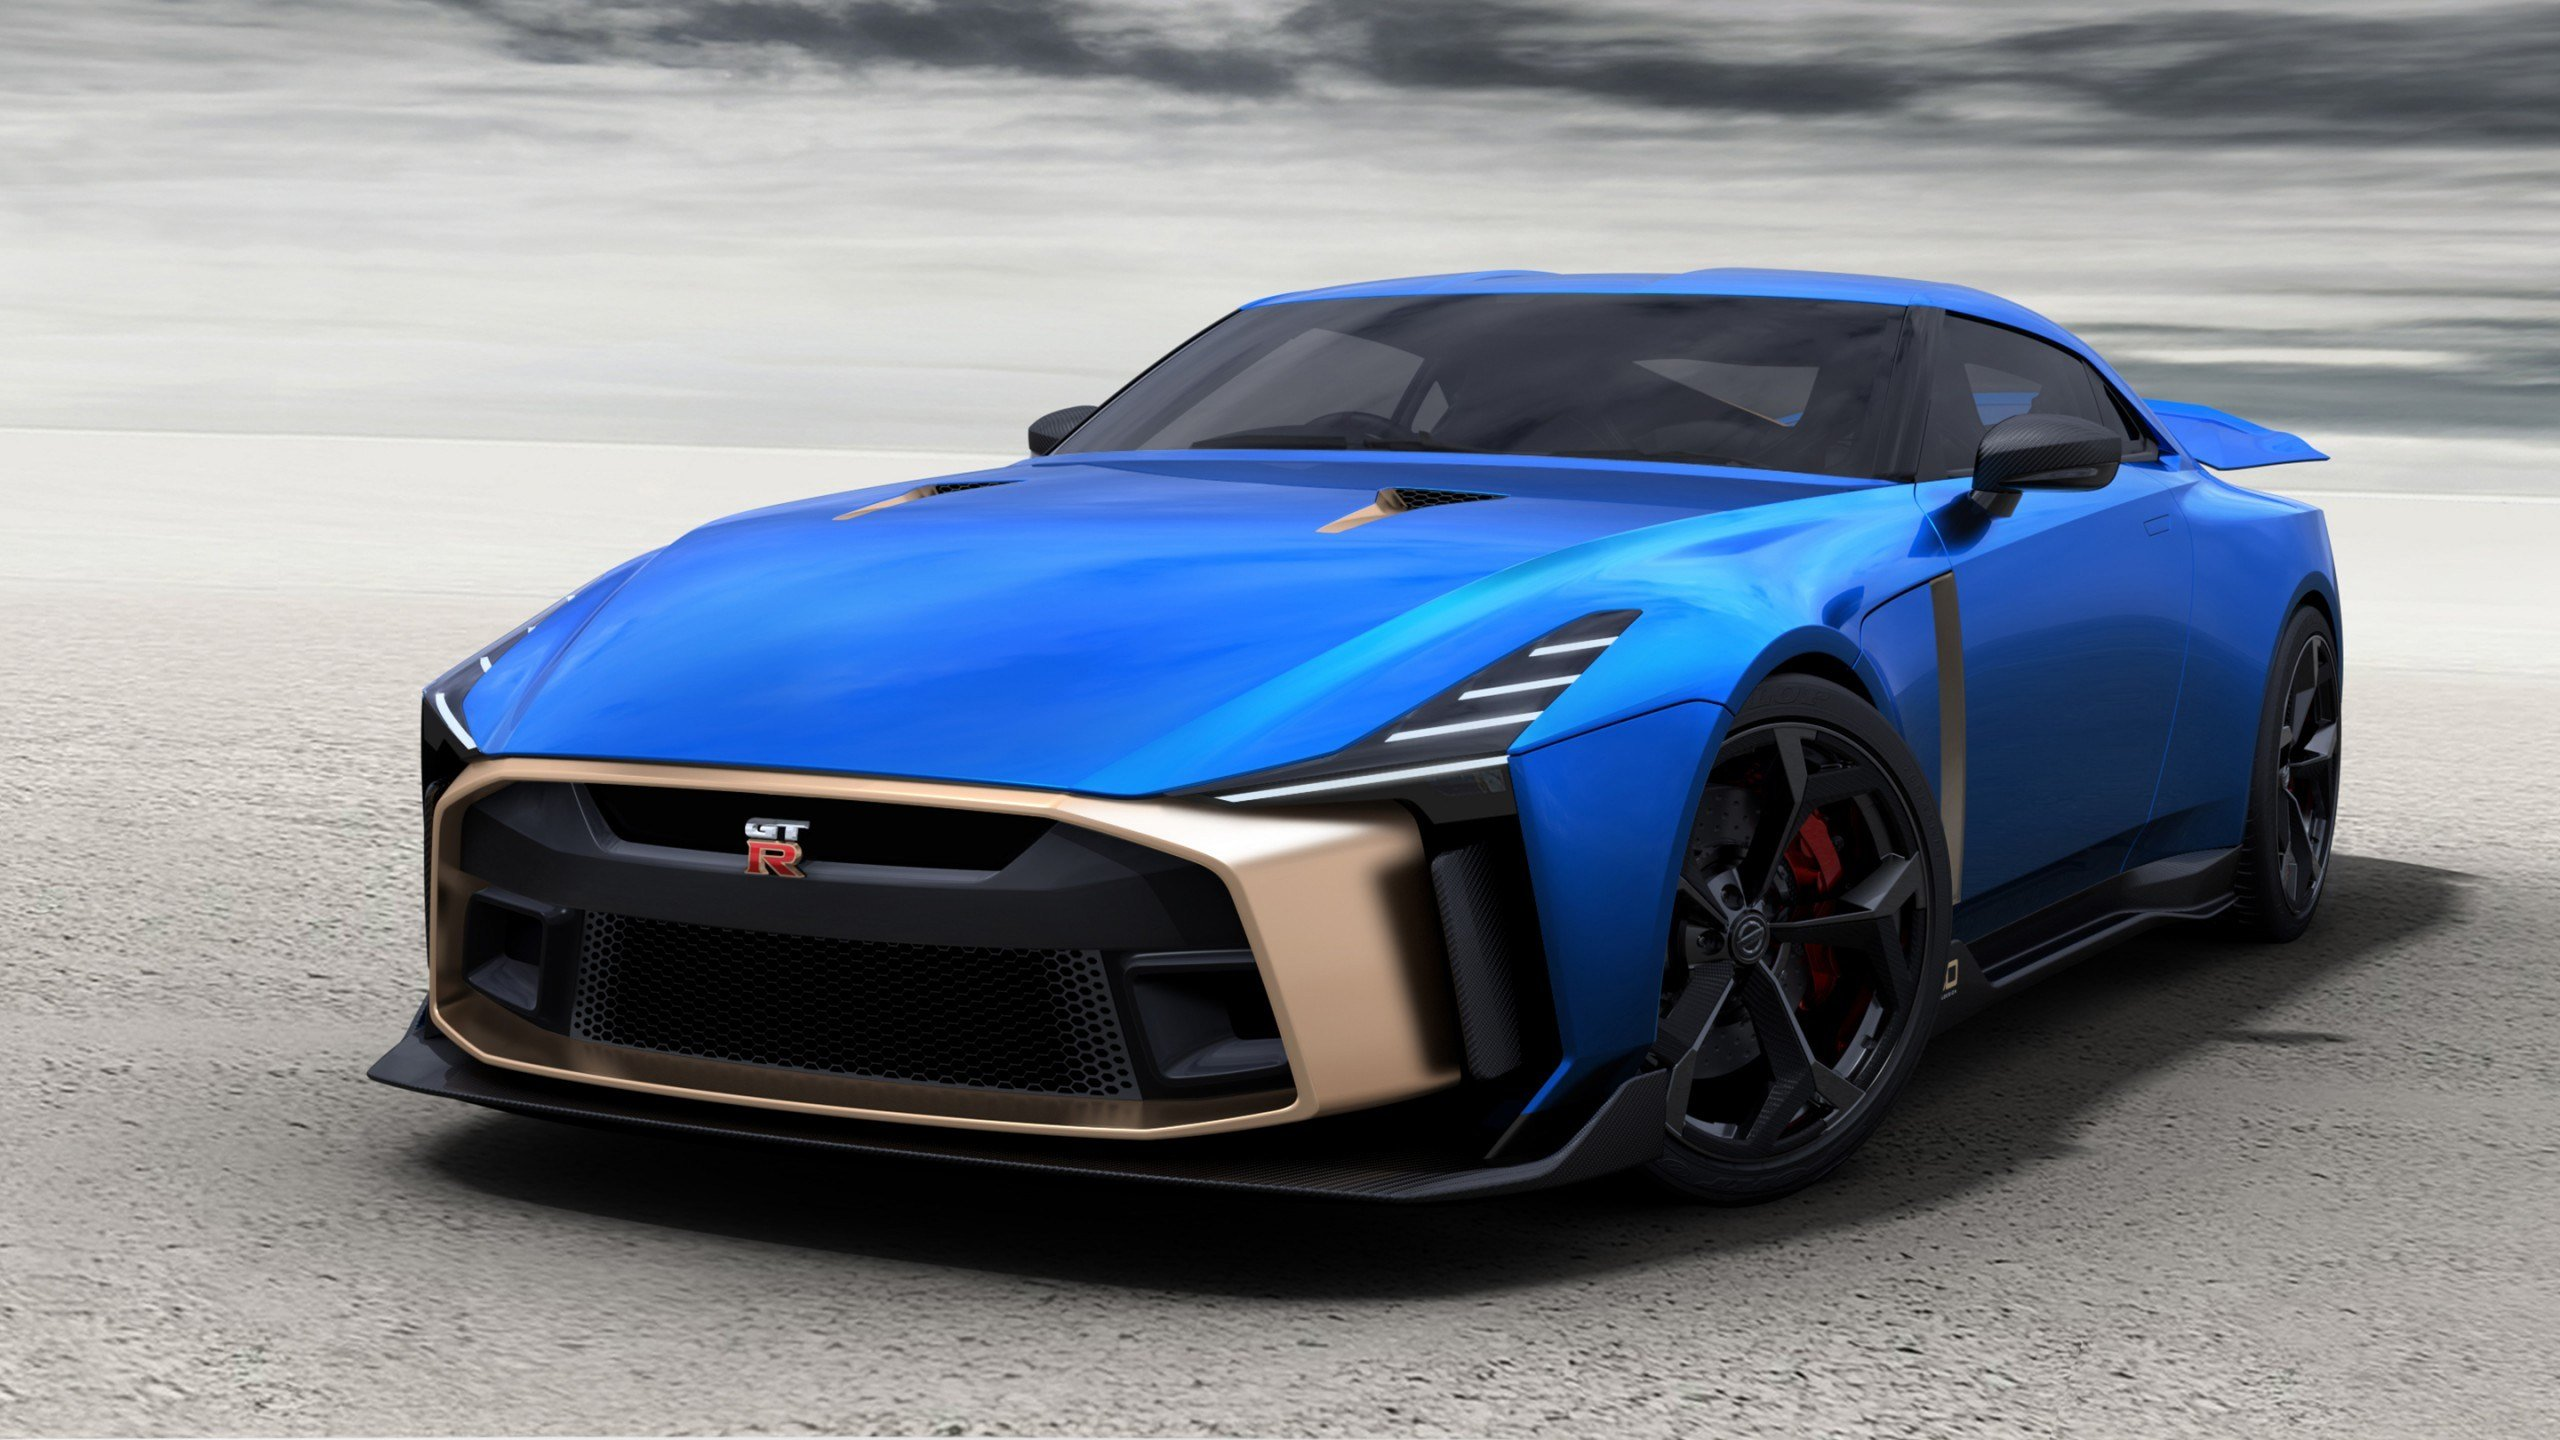 Latest Nissan Gt R50 2019 Wallpaper Hd Car Wallpapers Id 11677 Free Download